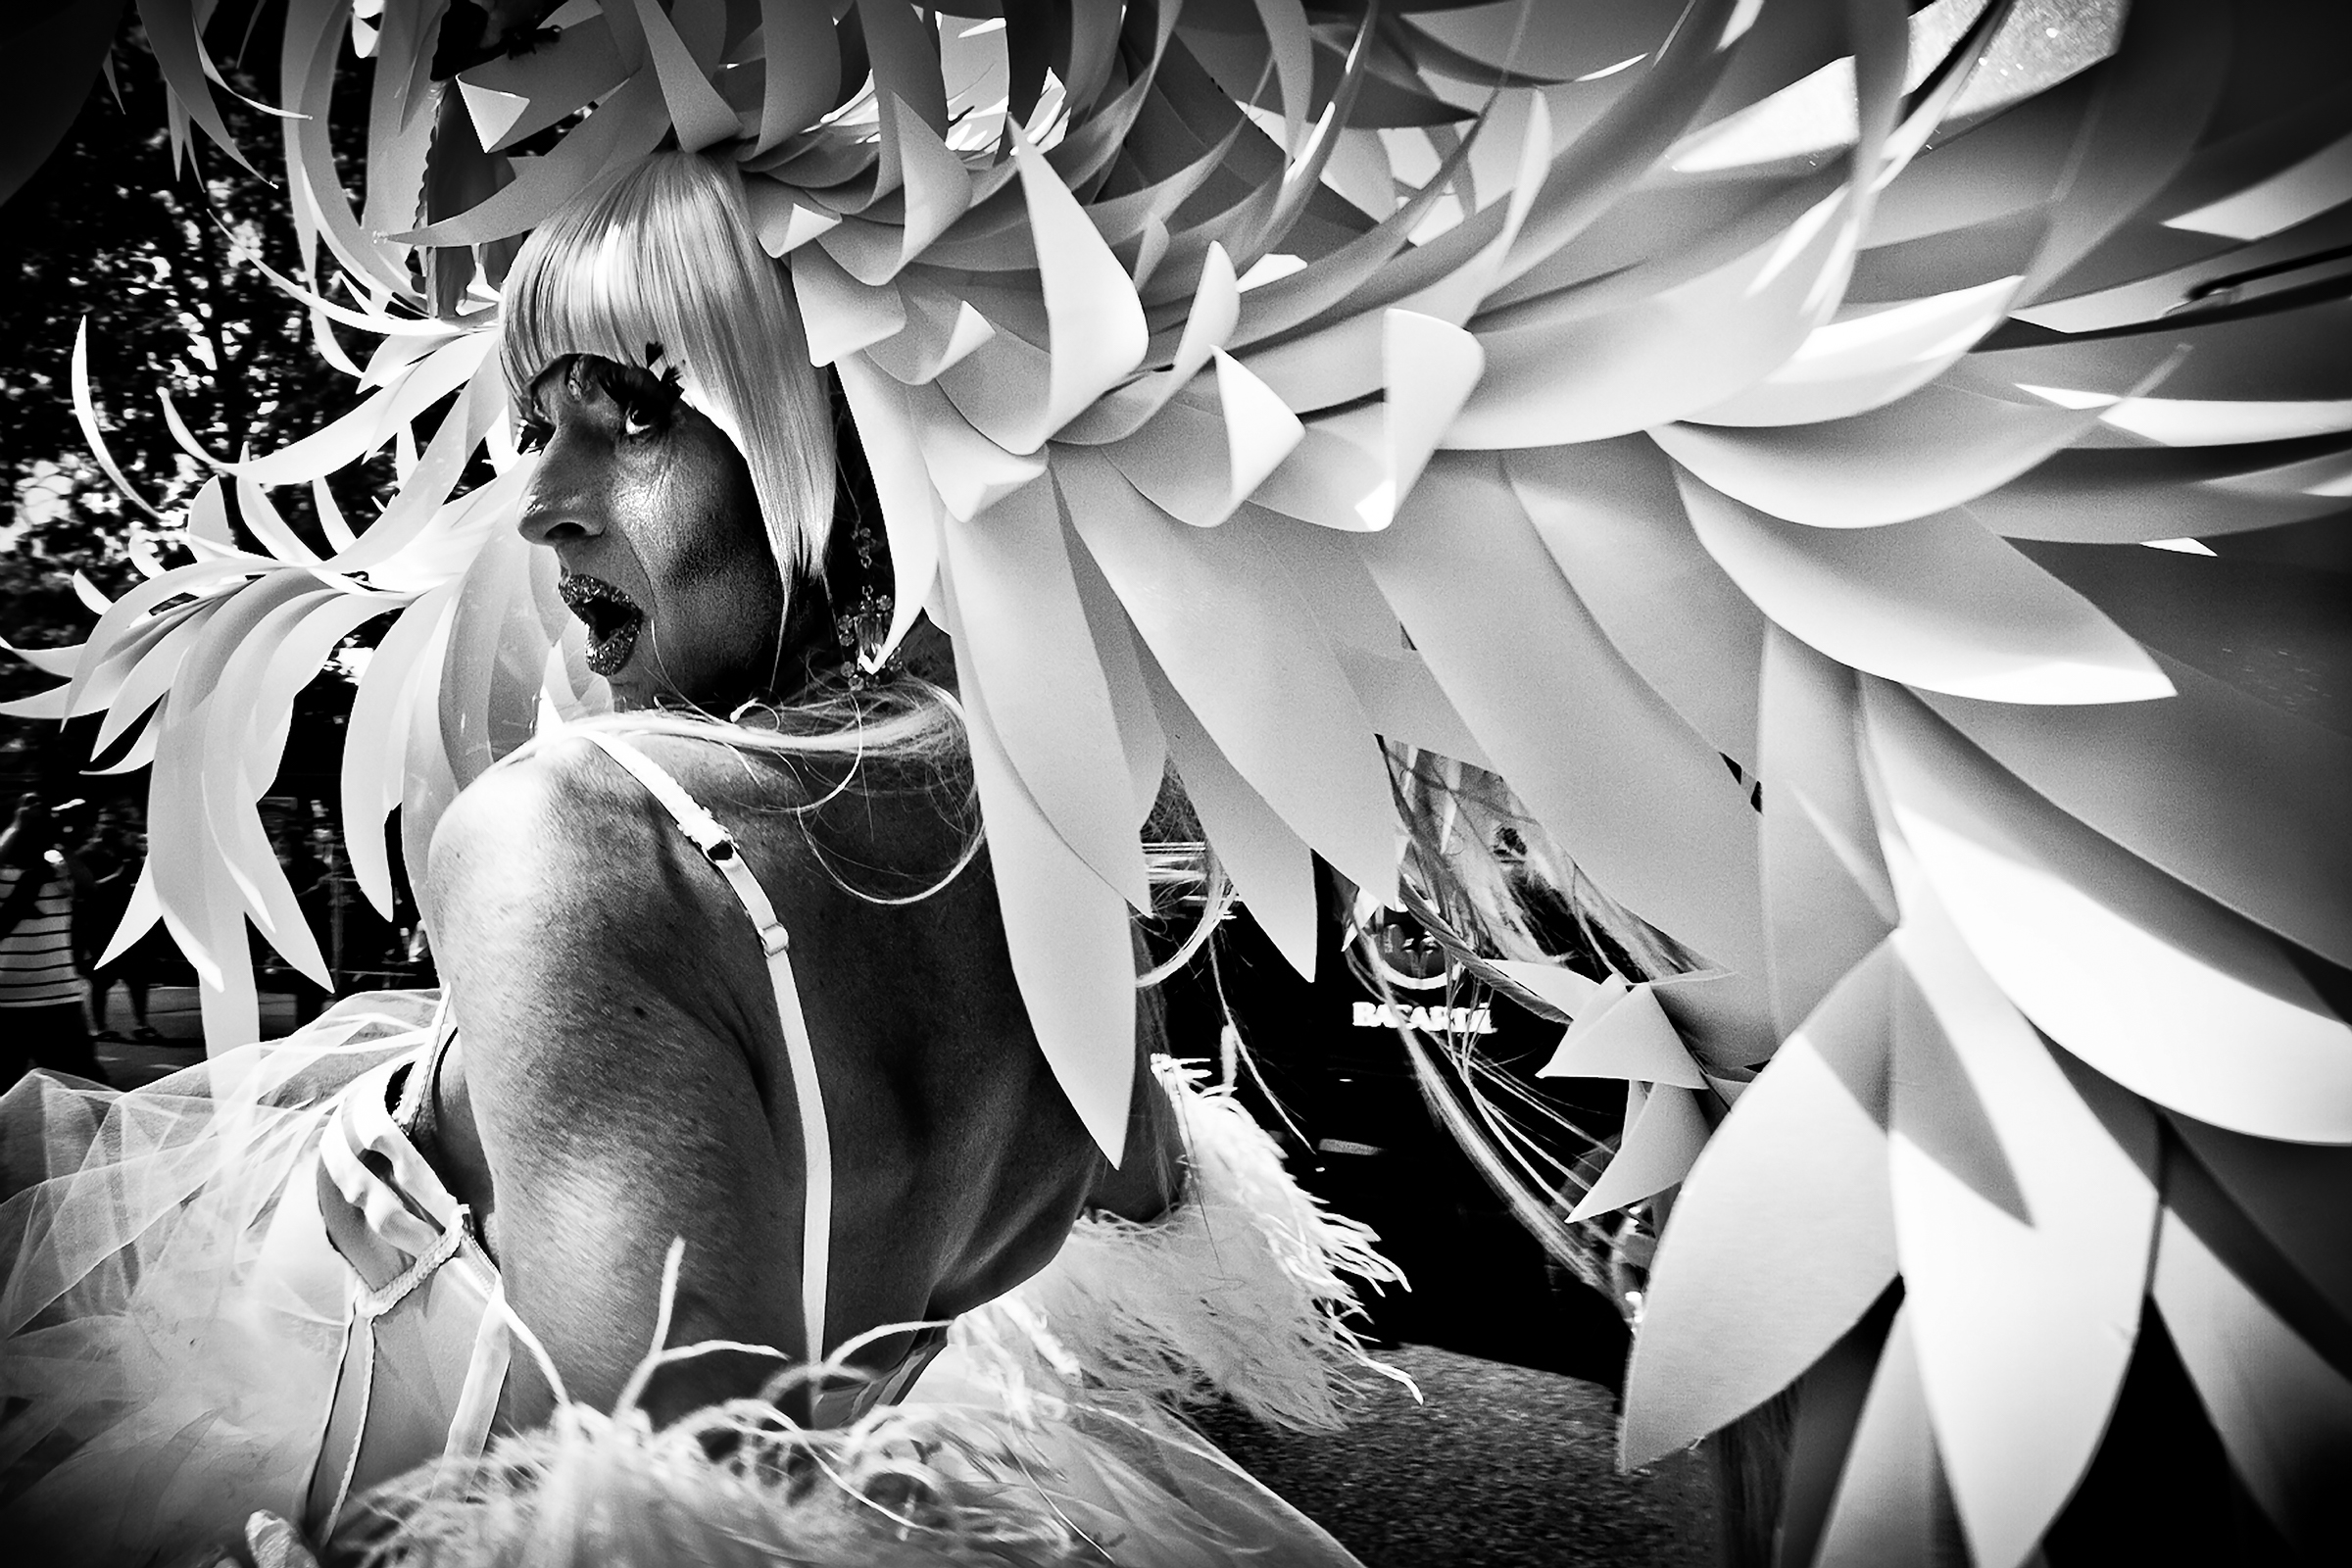 Female impersonator Guy Labrecque, known for his elaborate head pieces, marches in the Vancouver Pride Parade on July 31st, 2011.